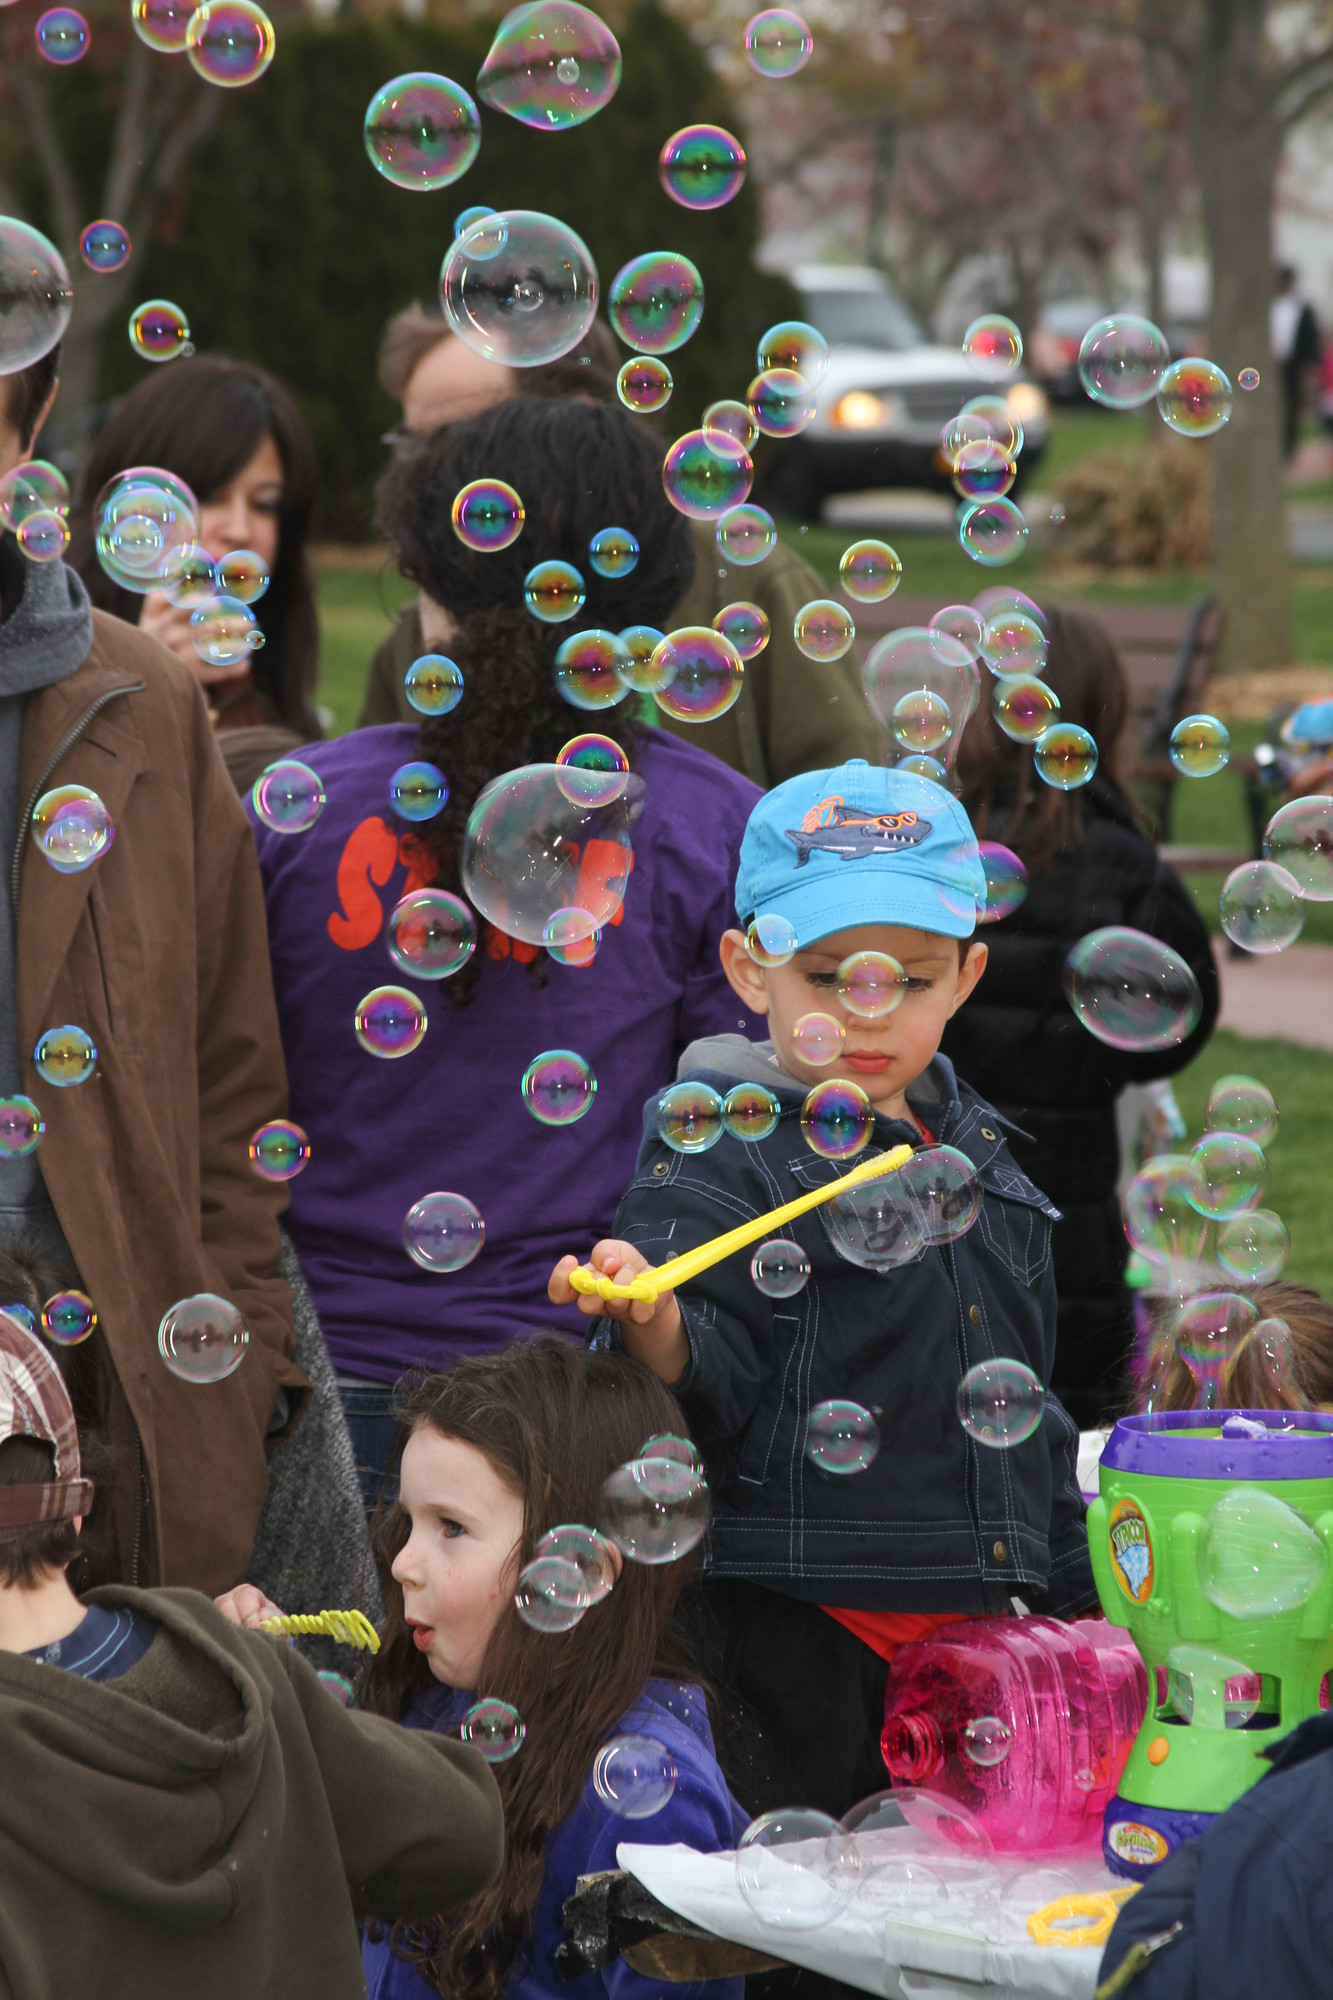 Blowing bubbles was a popular activity for the youngsters at the Lag B'Omer celebration.